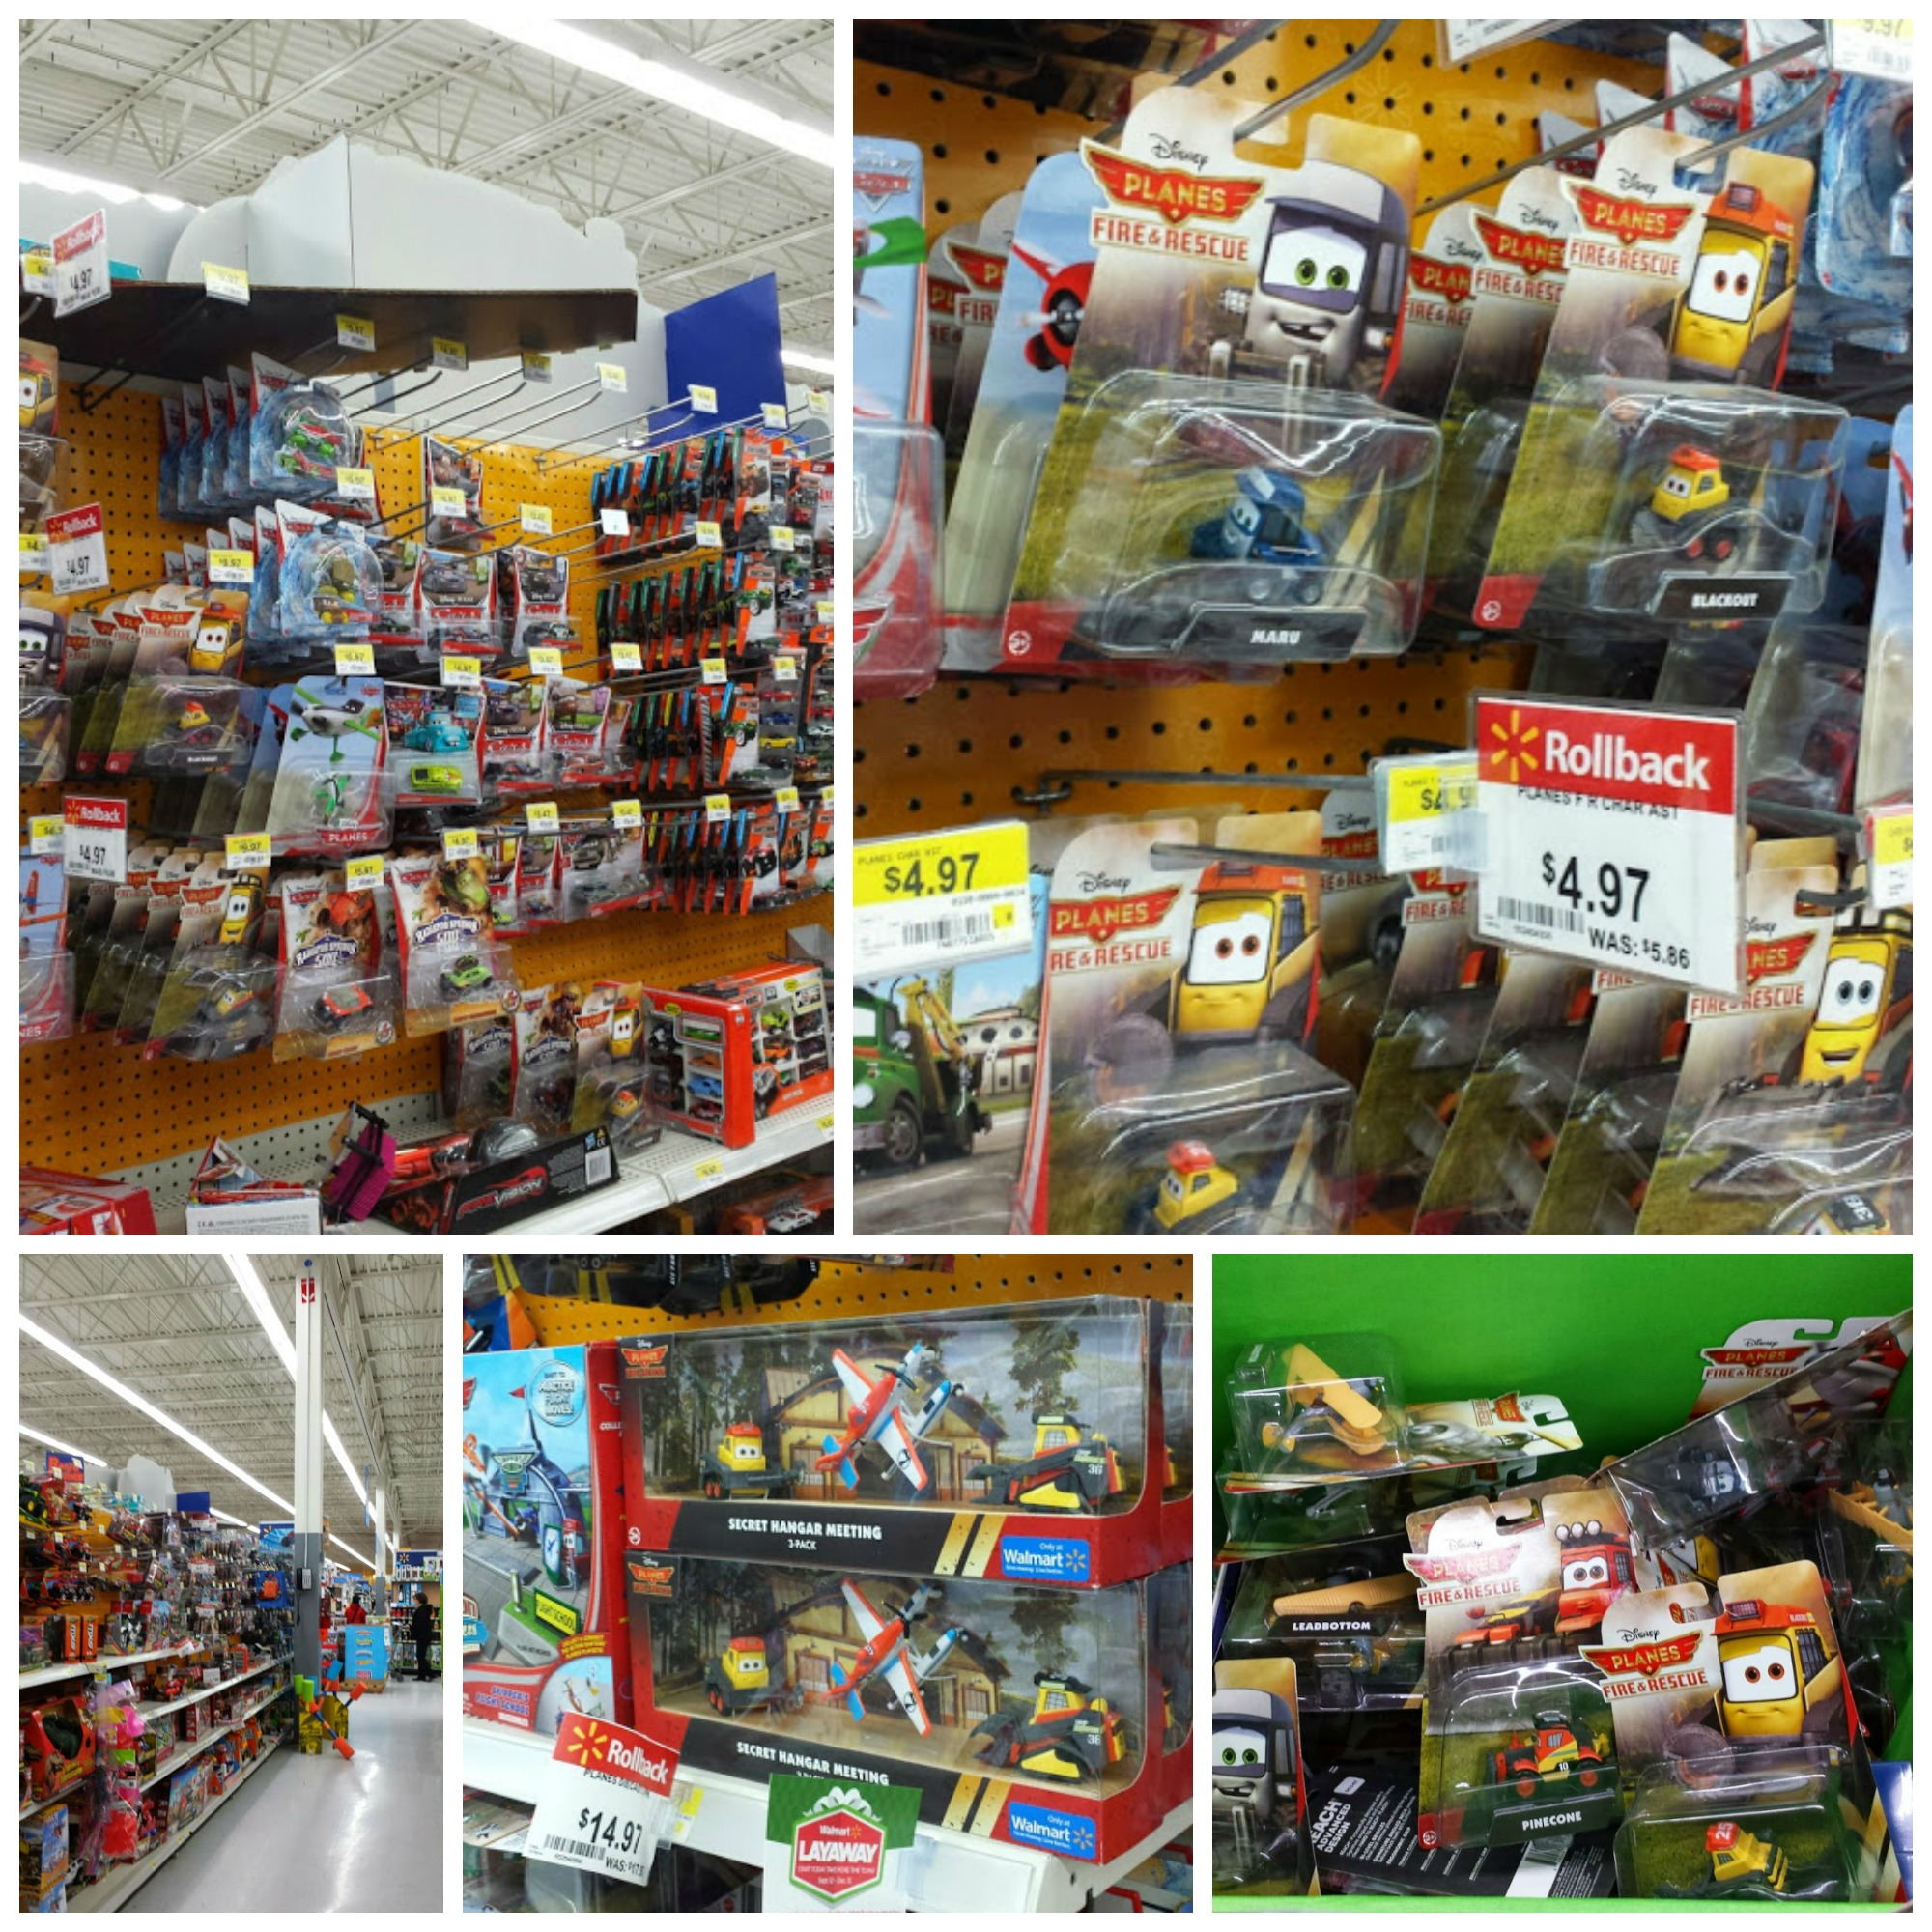 Toys For Walmart : Disney planes themed christmas tree planestotherescue